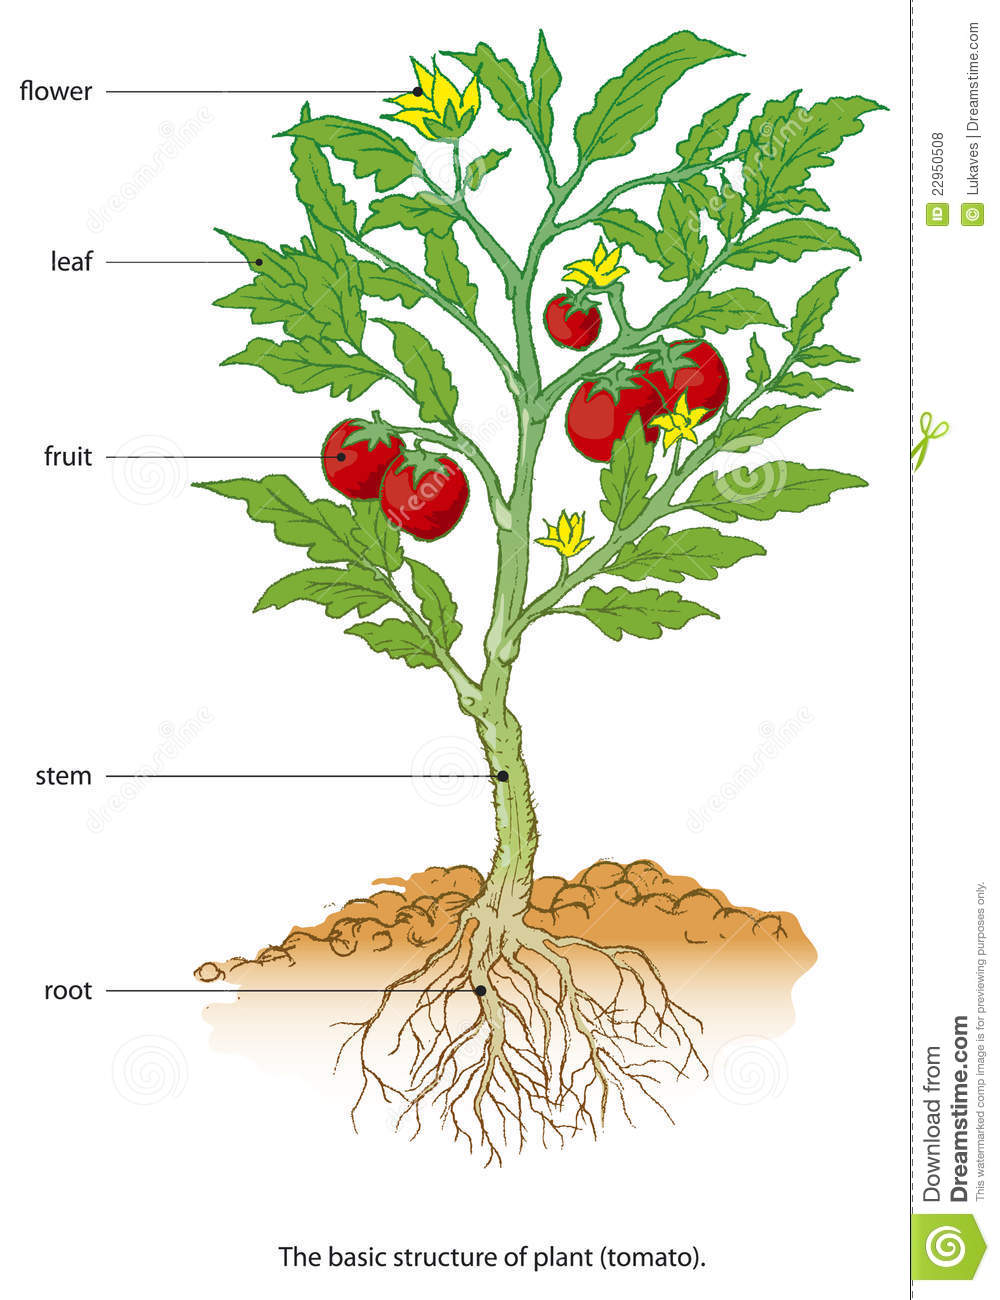 Diagram Tomato Plant Ask Answer Wiring Strawberry Stock Vector Illustration Of Ecology Germinate 22950508 Growth Cycle